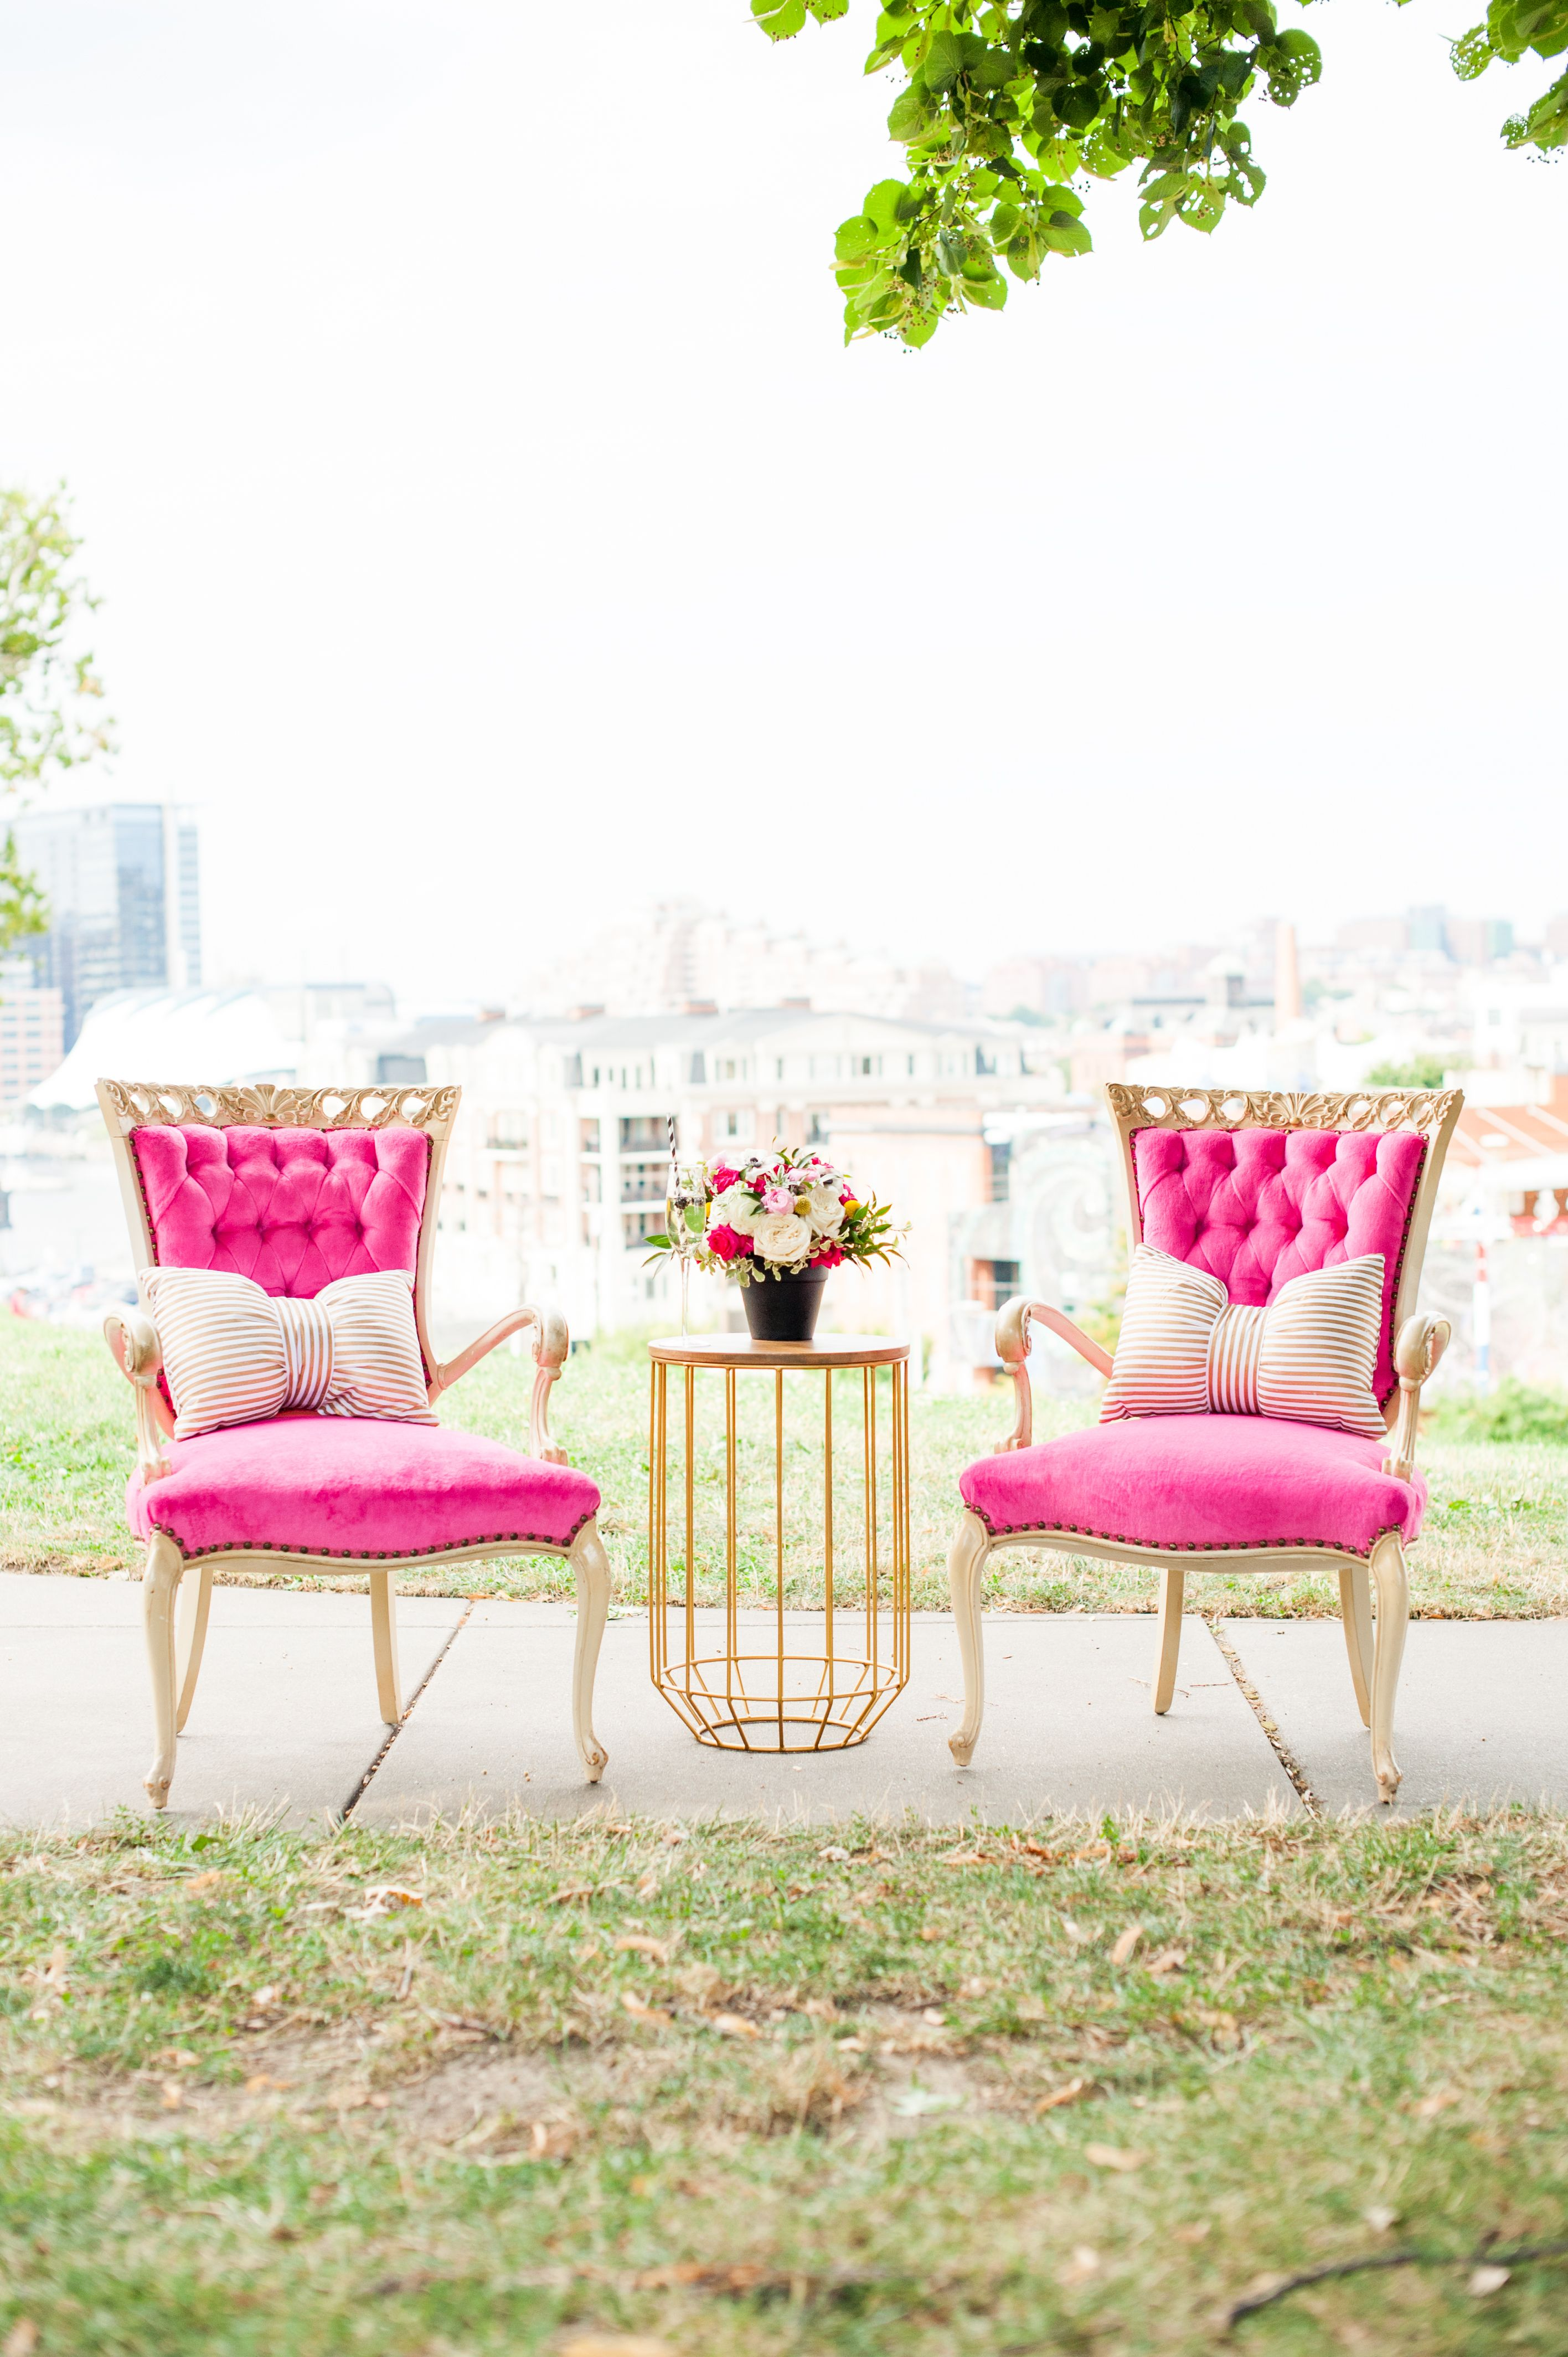 chair cover rental baltimore ashley swivel hot pink sweetheart seating wedding arrangement photography location fells point maryland rentals white glove ft louella chairs planning styling lovely bubbly events